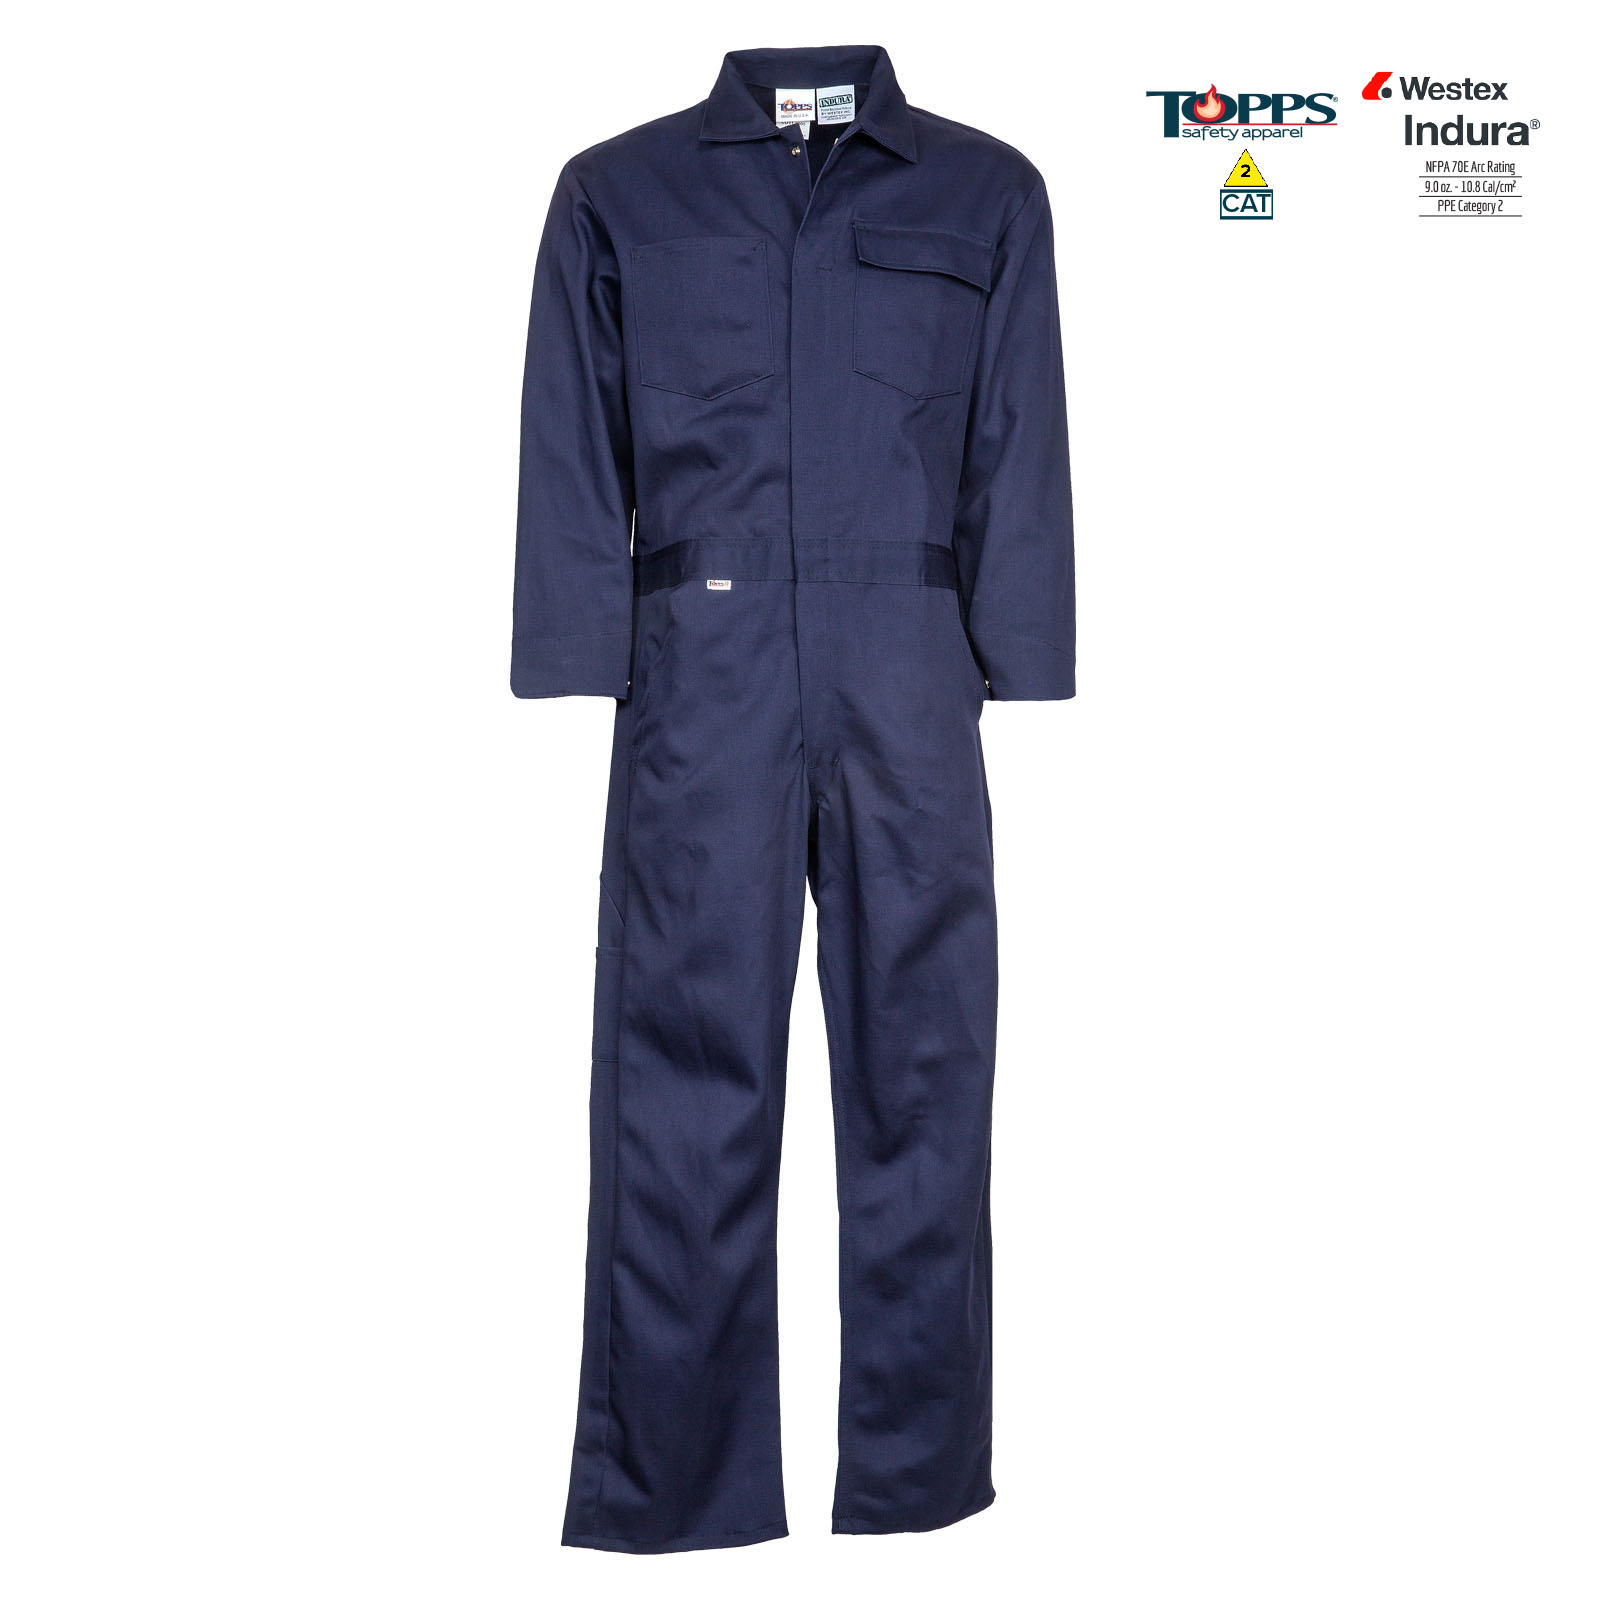 Indura® 100% Cotton Flame Resistant Standard Coverall-TOPPS